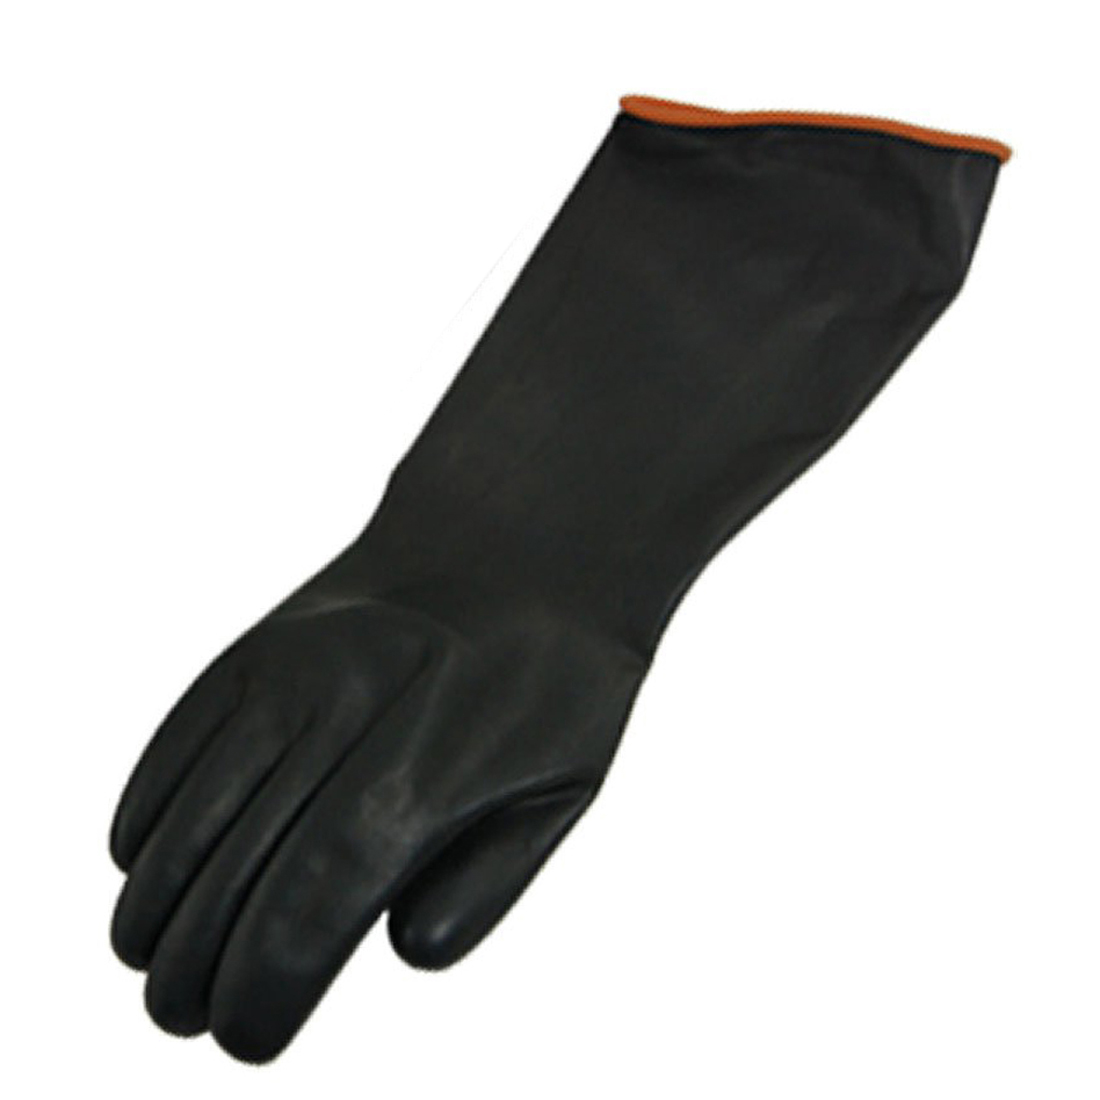 rubber glove market in finland to Rubber glove market in malaysia to 2018 - market size, trends, and forecasts  research report offers the most up-to-date market data on the.